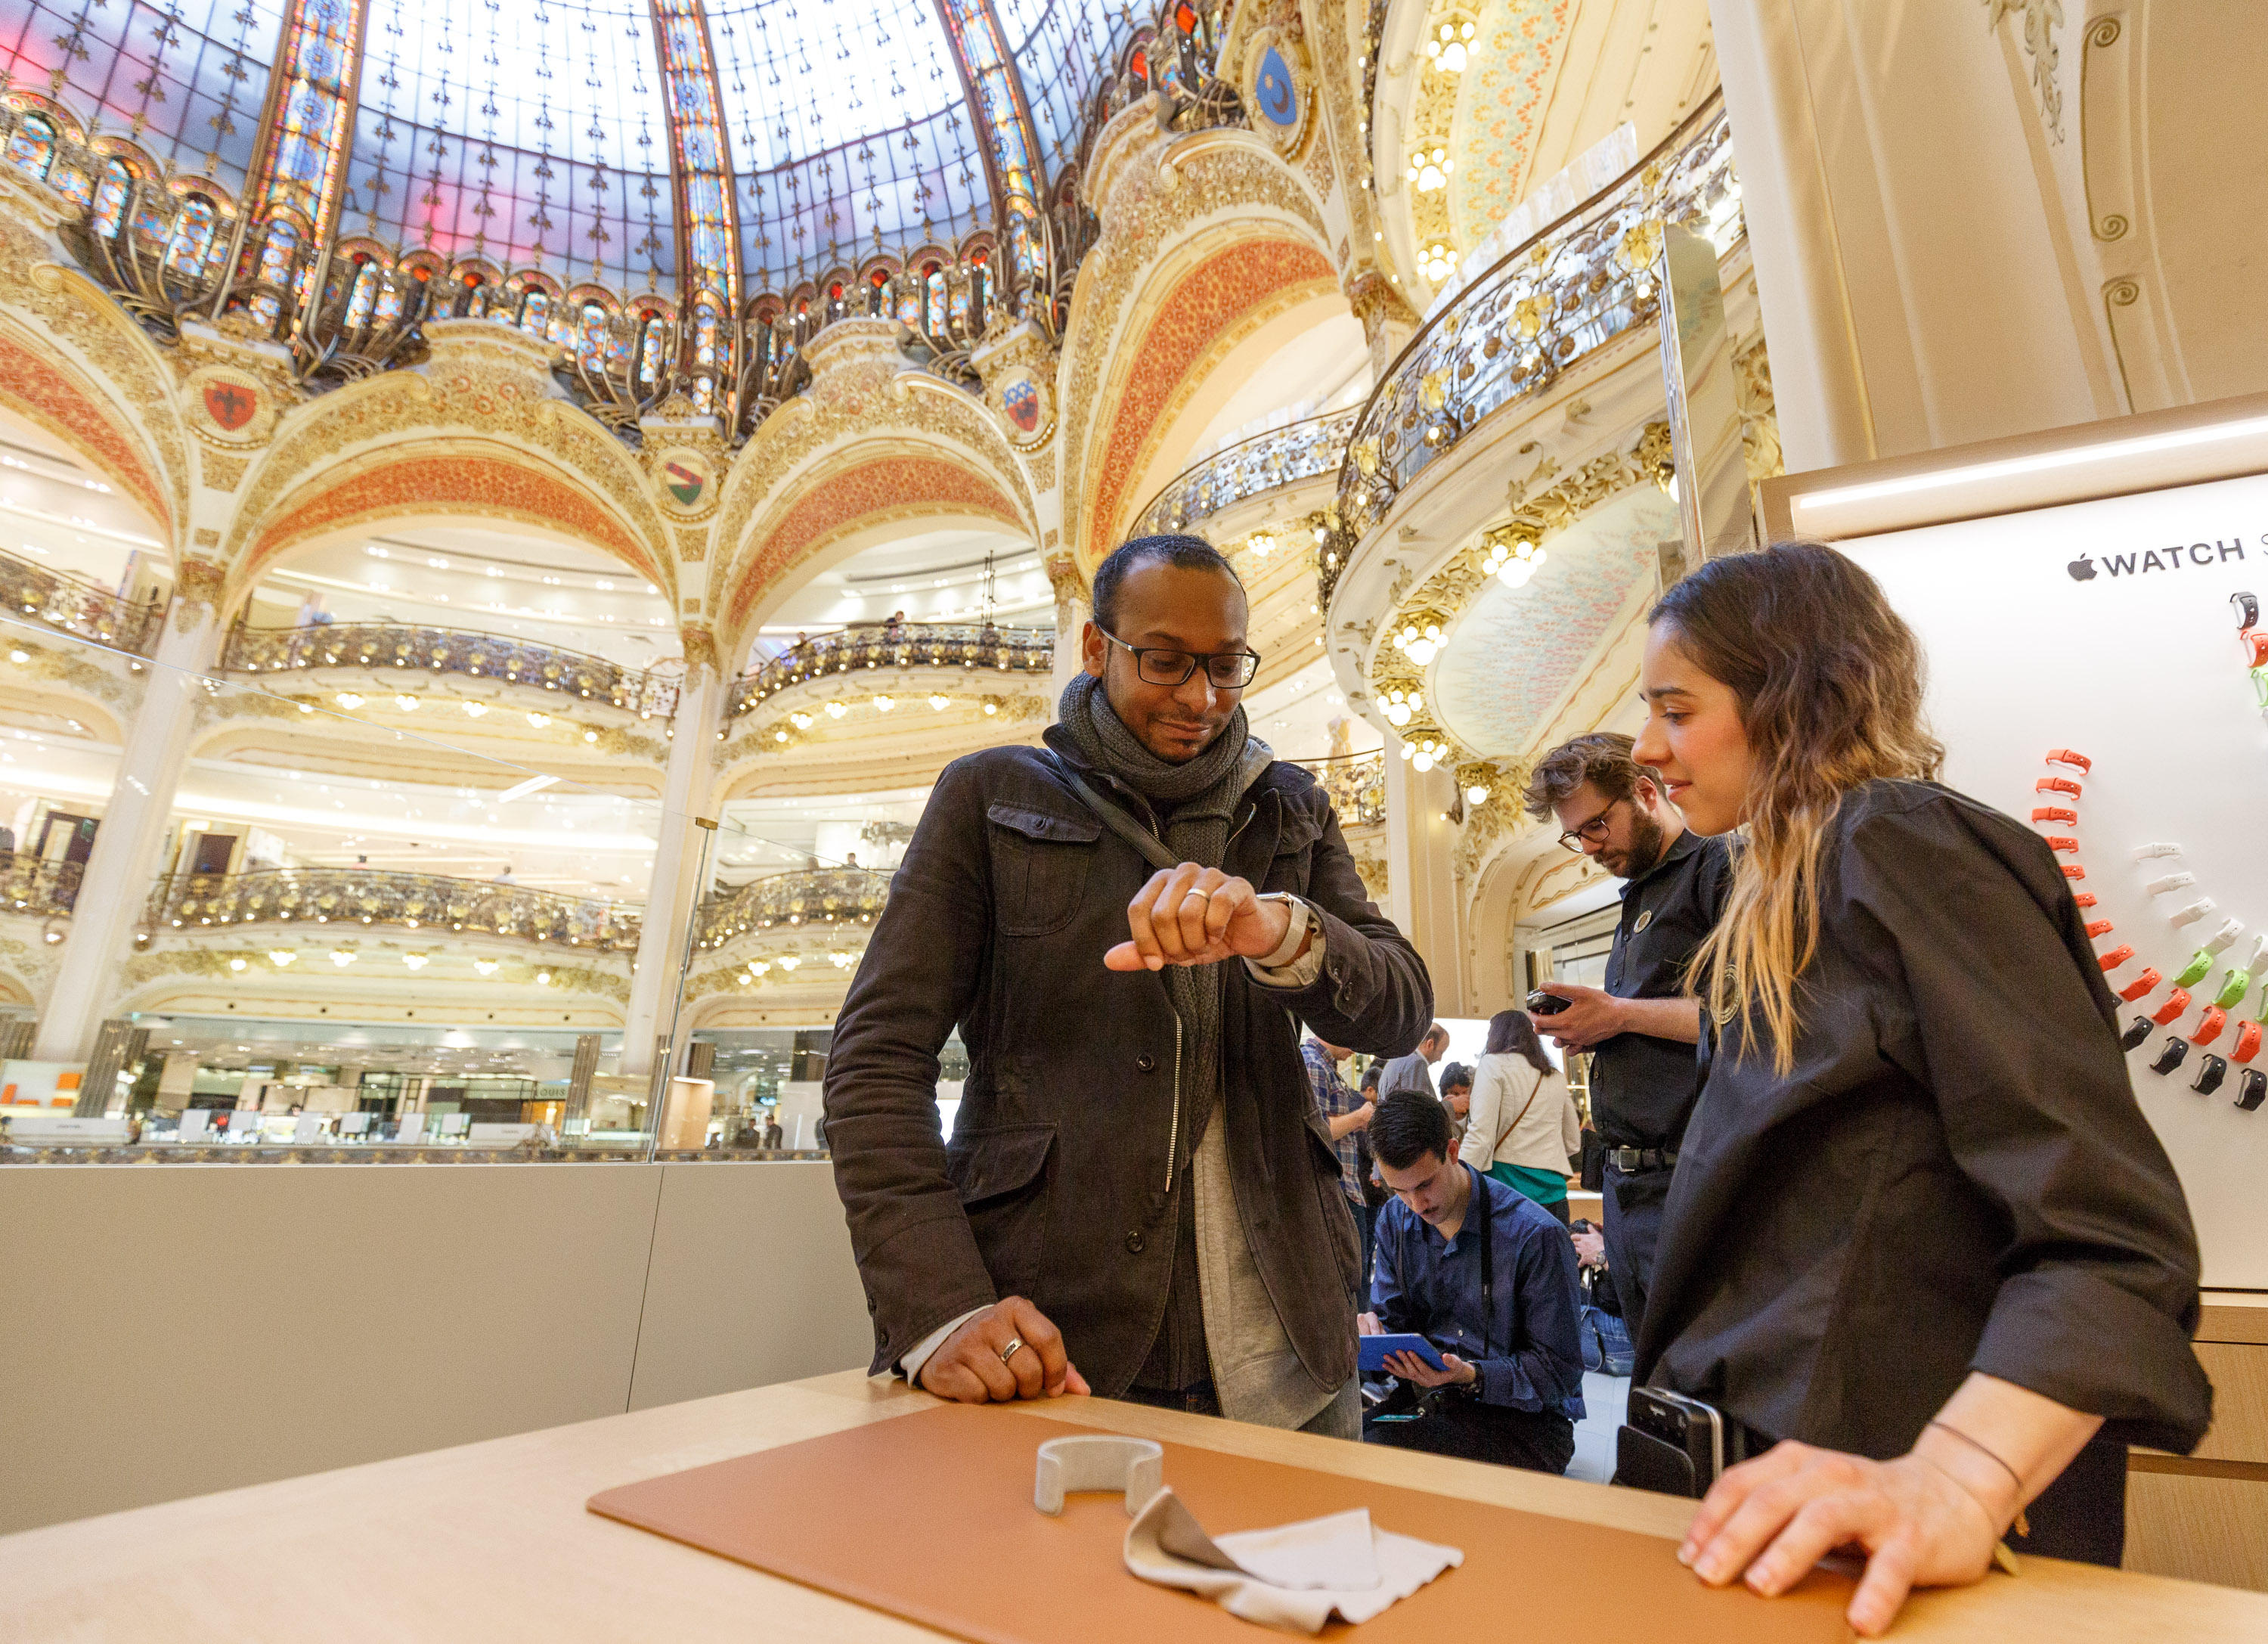 20150410-apple-watch-galeries-lafayette-001-2